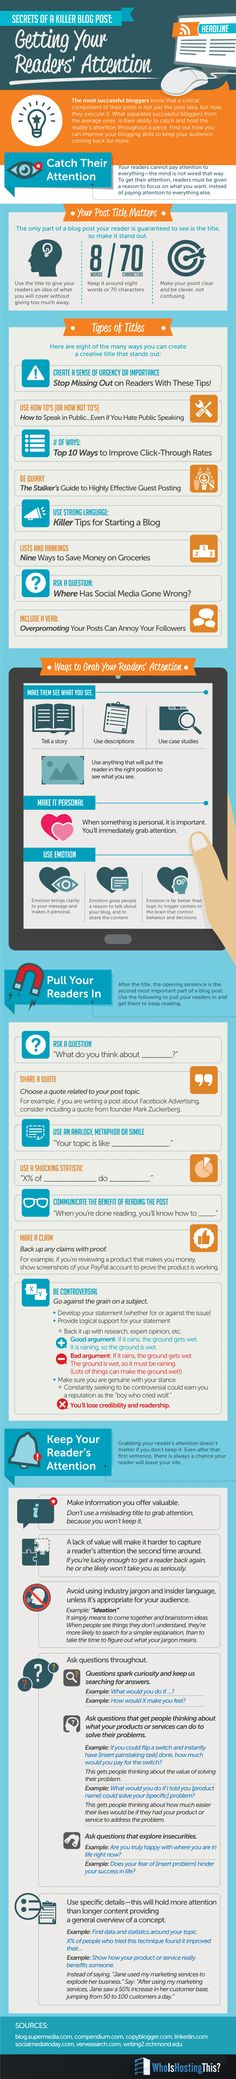 [Infographic] The Secrets of a Killer #Blog Post #infographic